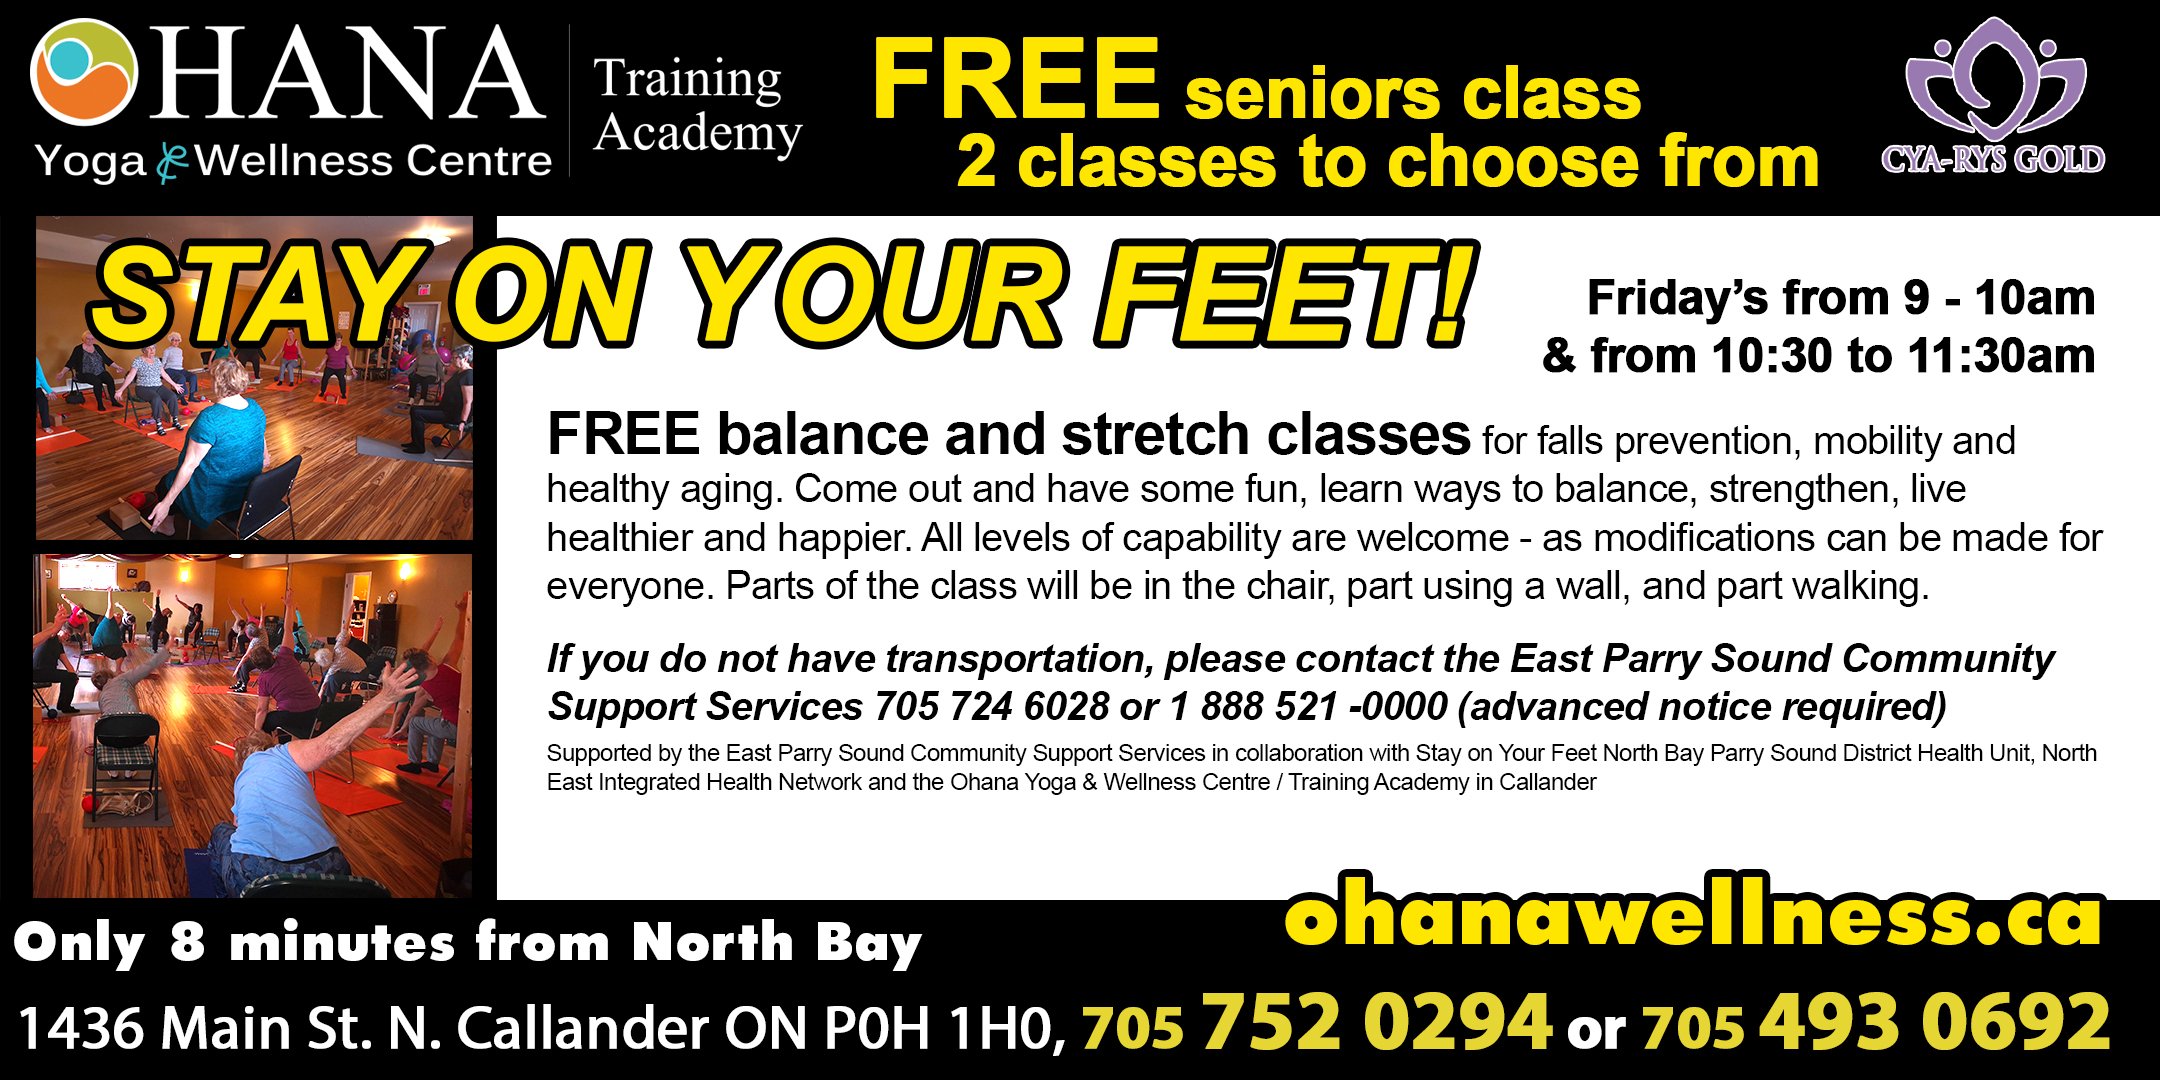 Ohana's Stay of Your Feet - Balance, Stretch, & have some fun program!